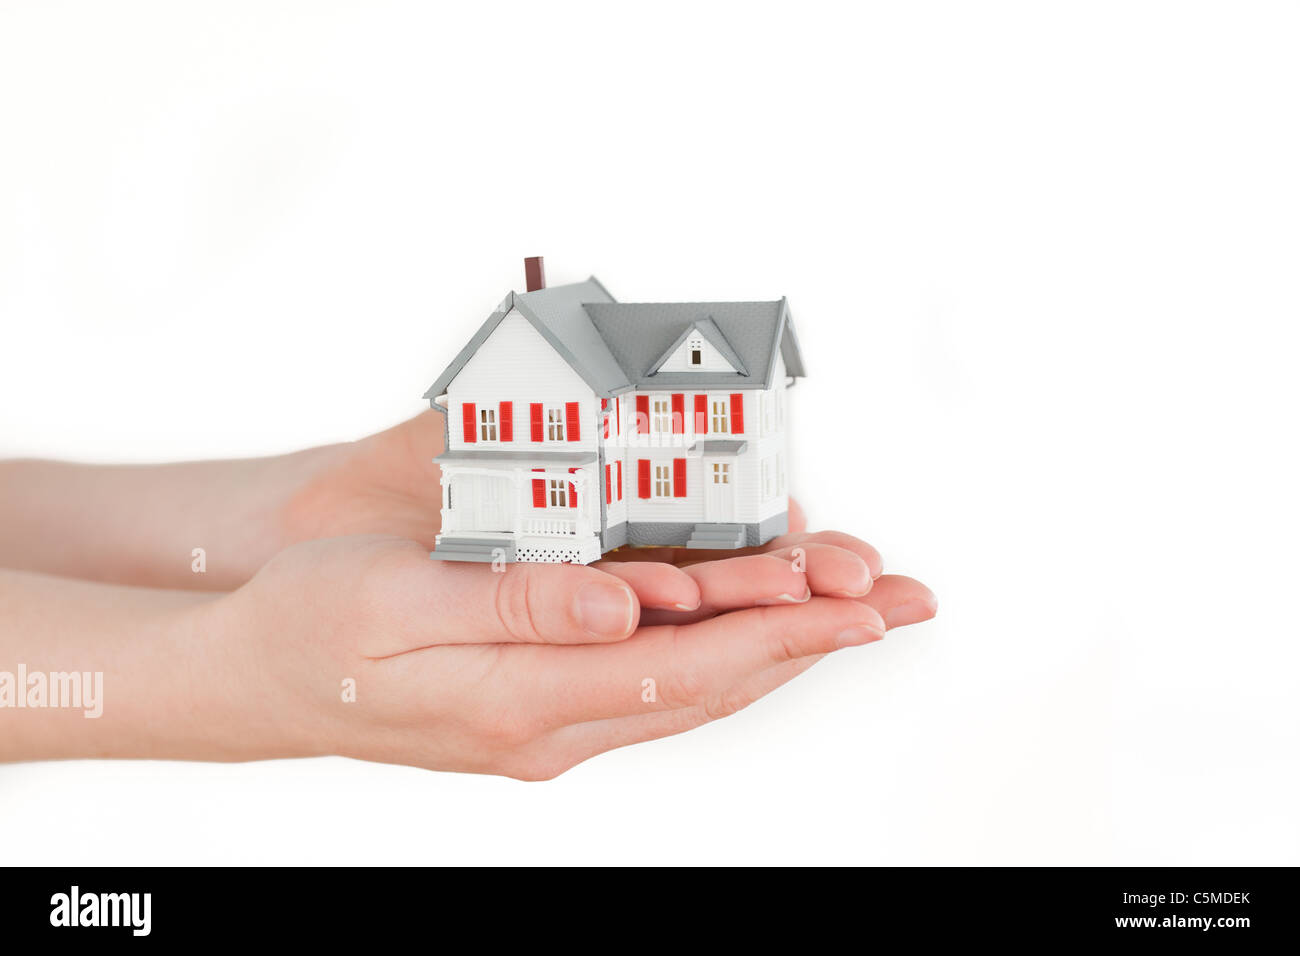 Hands holding a miniature house on a white background - Stock Image